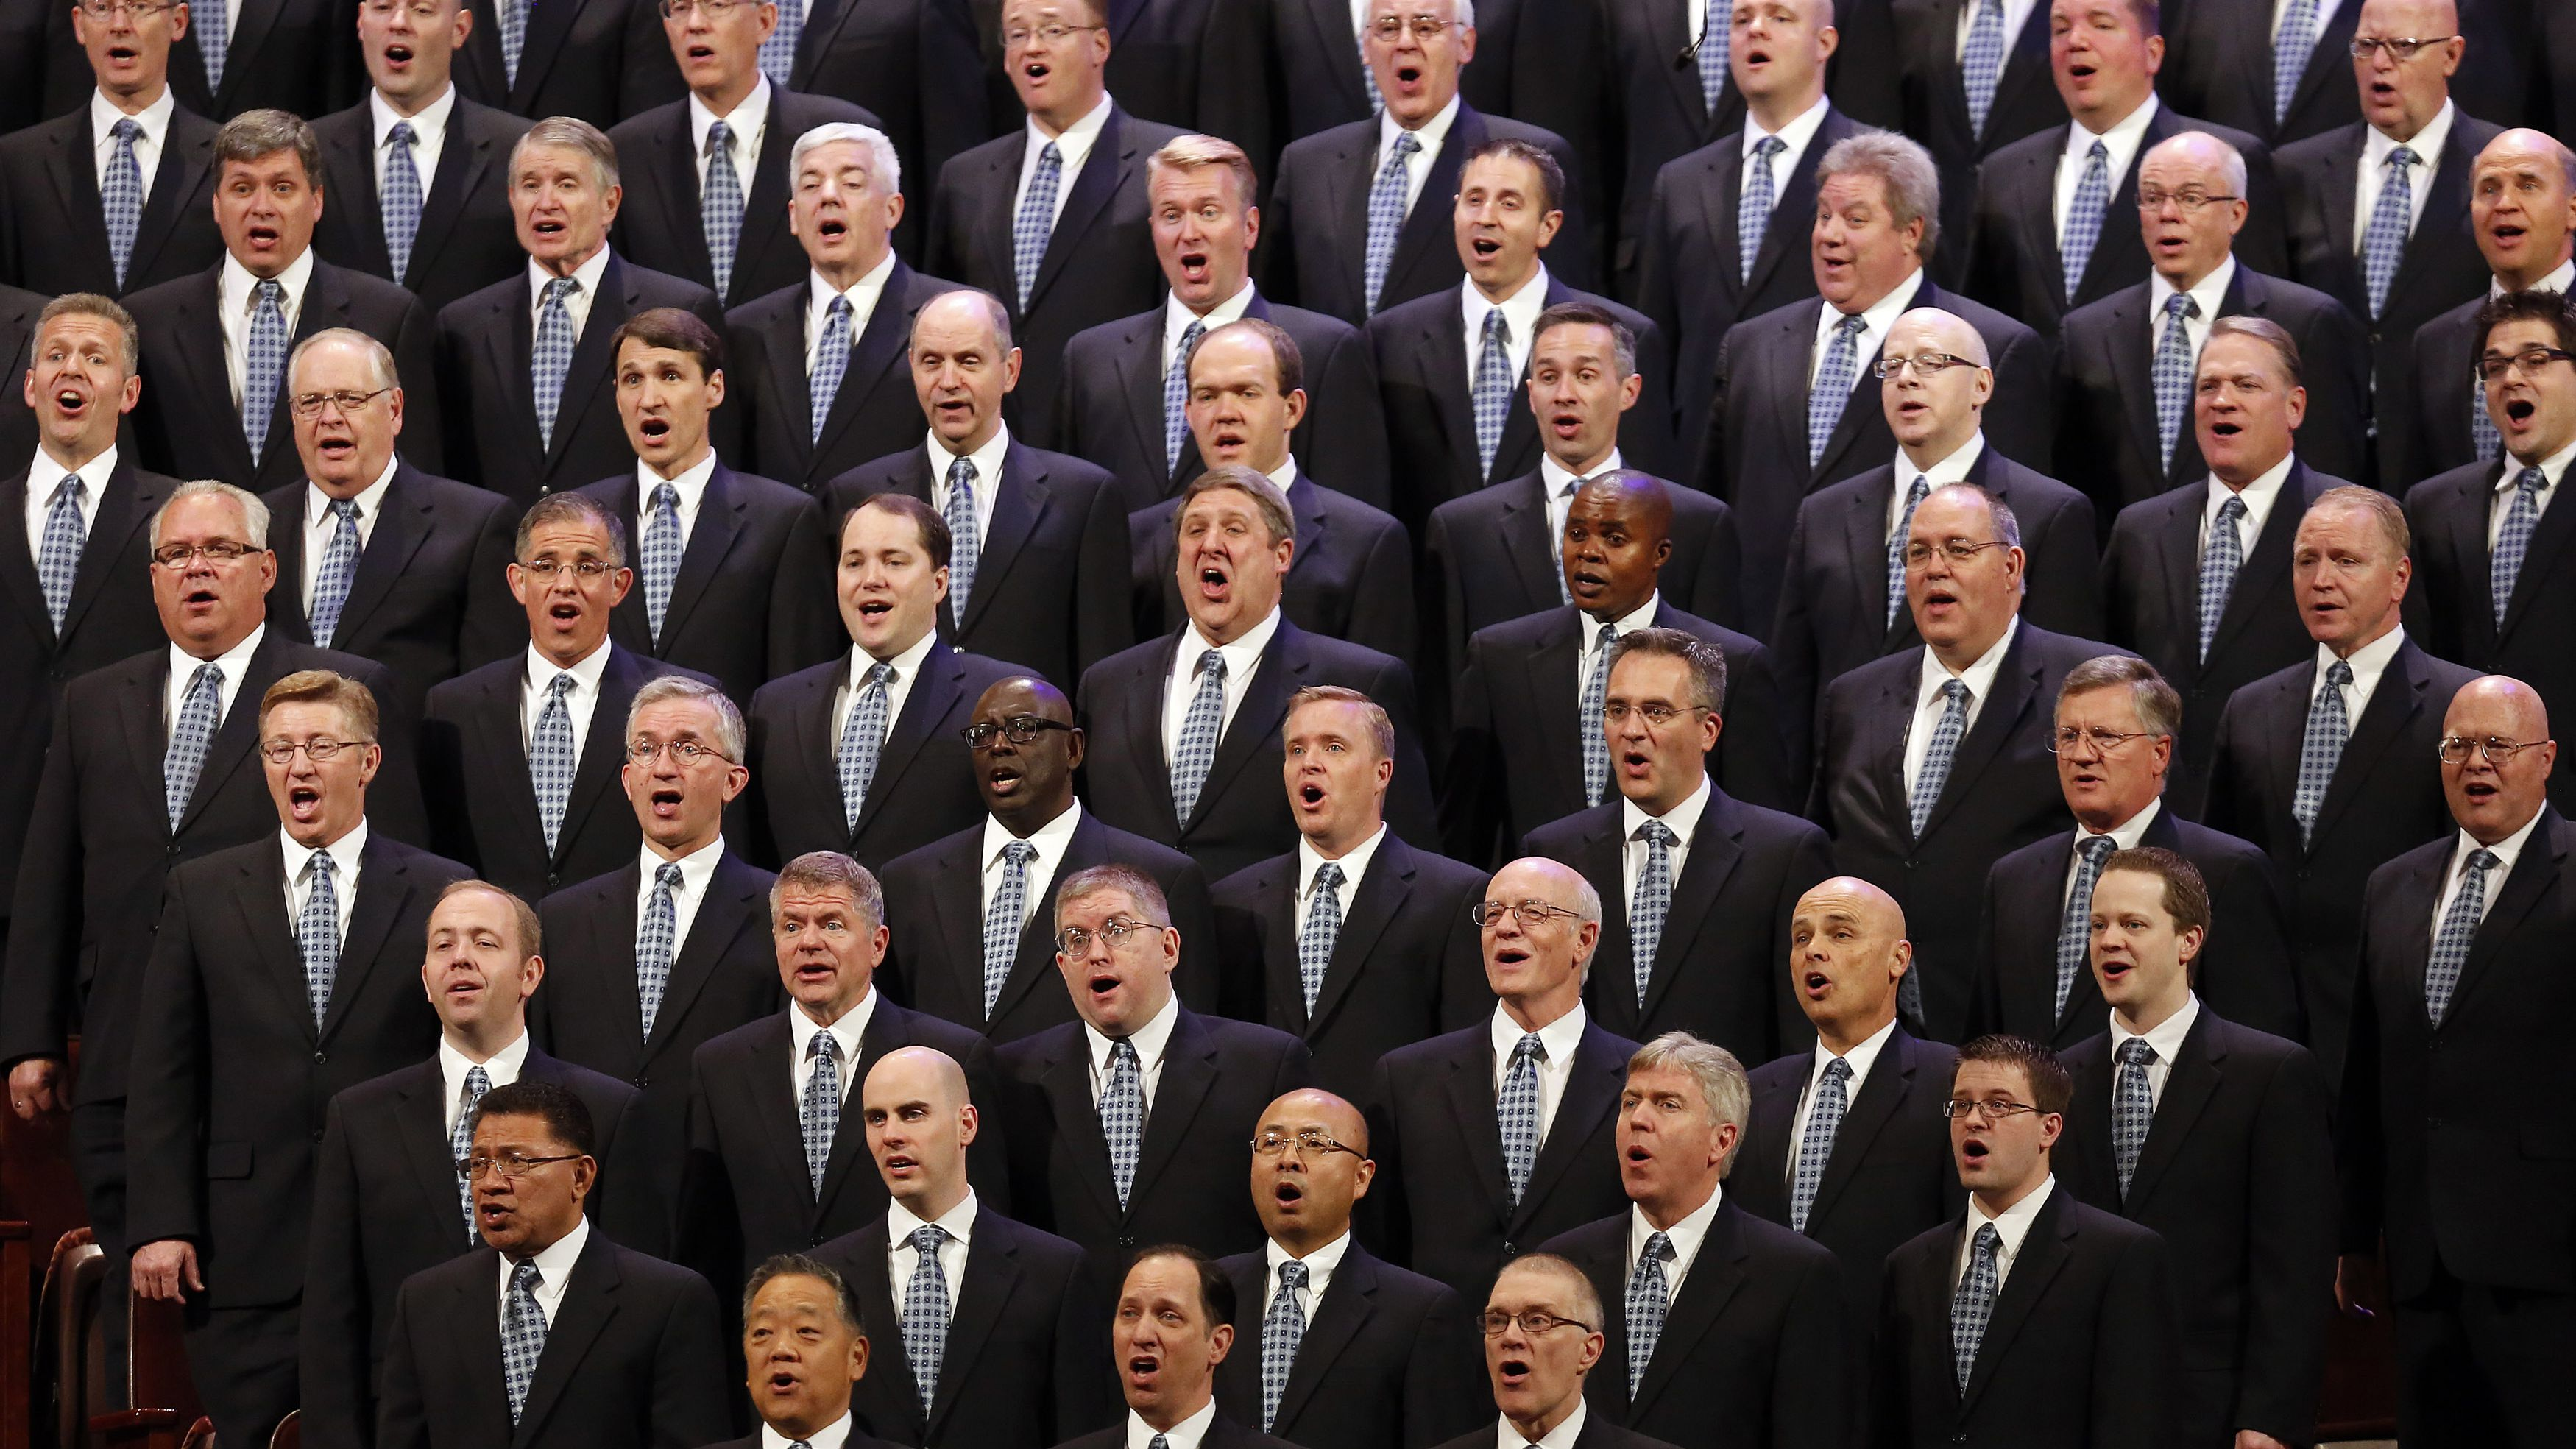 many men sing with other men